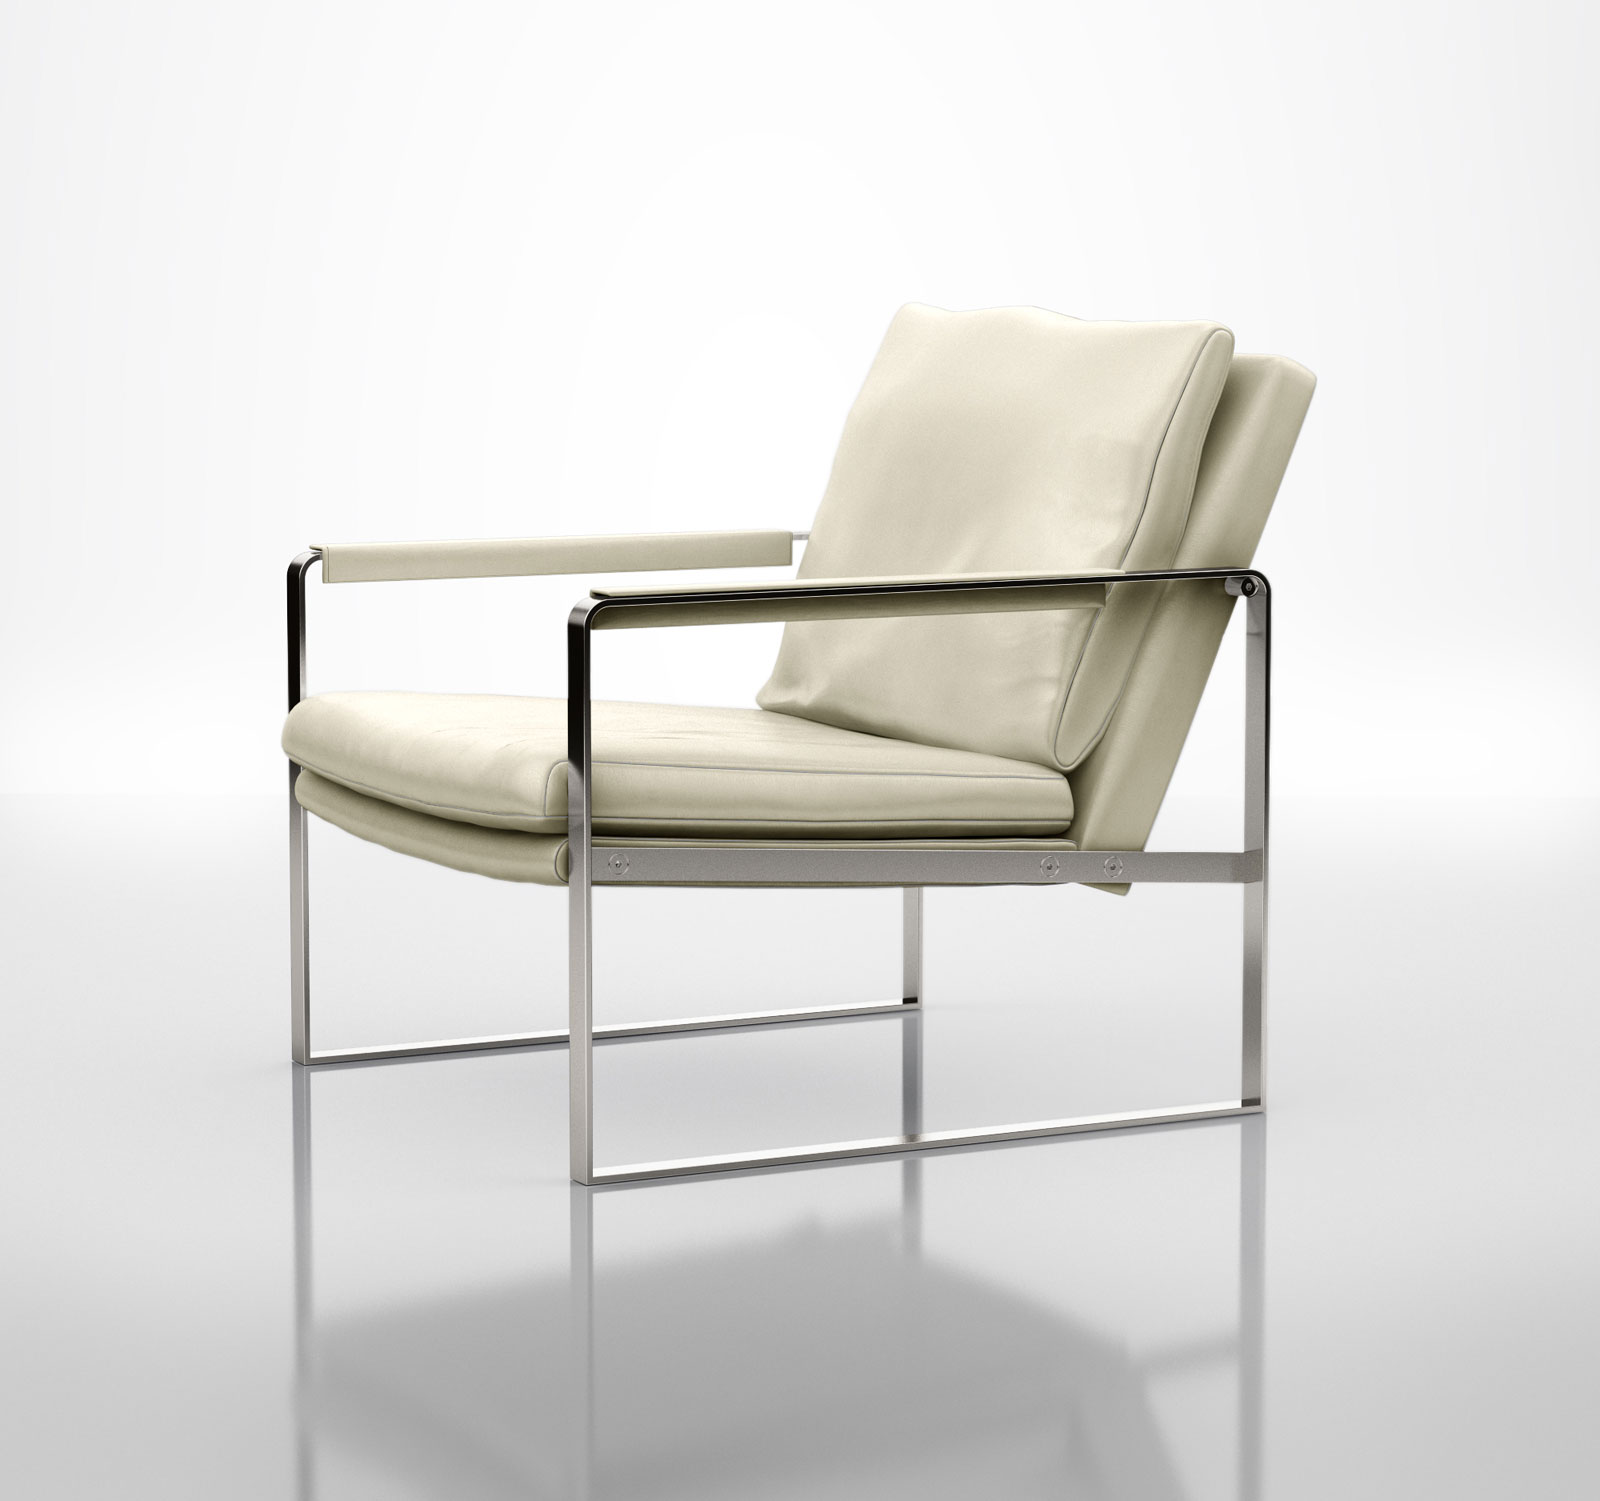 contemporary silver and leather accent lounge armchair las vegas  - contemporary silver and leather accent lounge armchair las vegas nevadamlchar